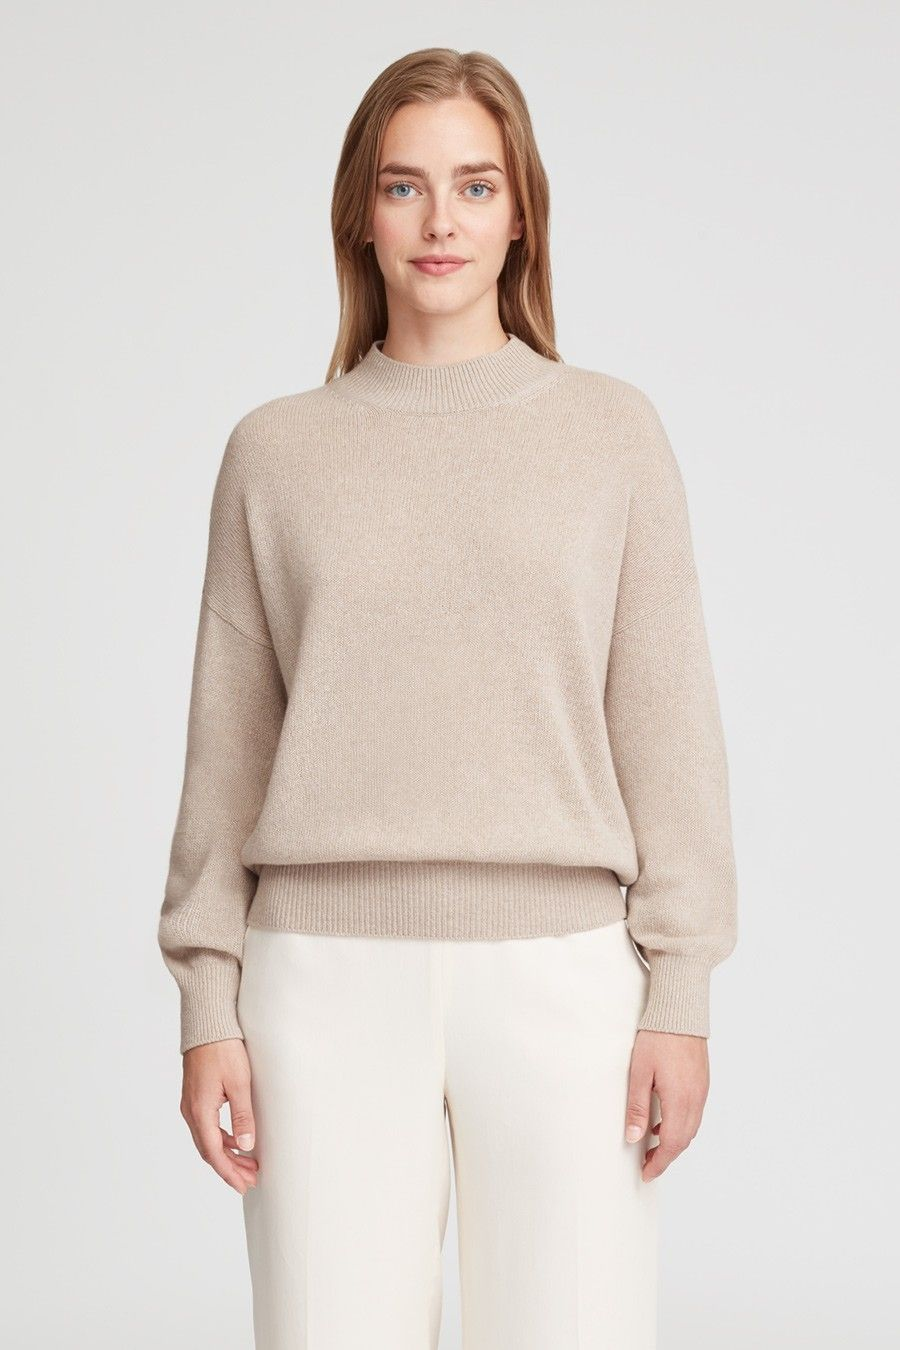 Recycled Cashmere Mock Neck Sweater | Mock neck sweater